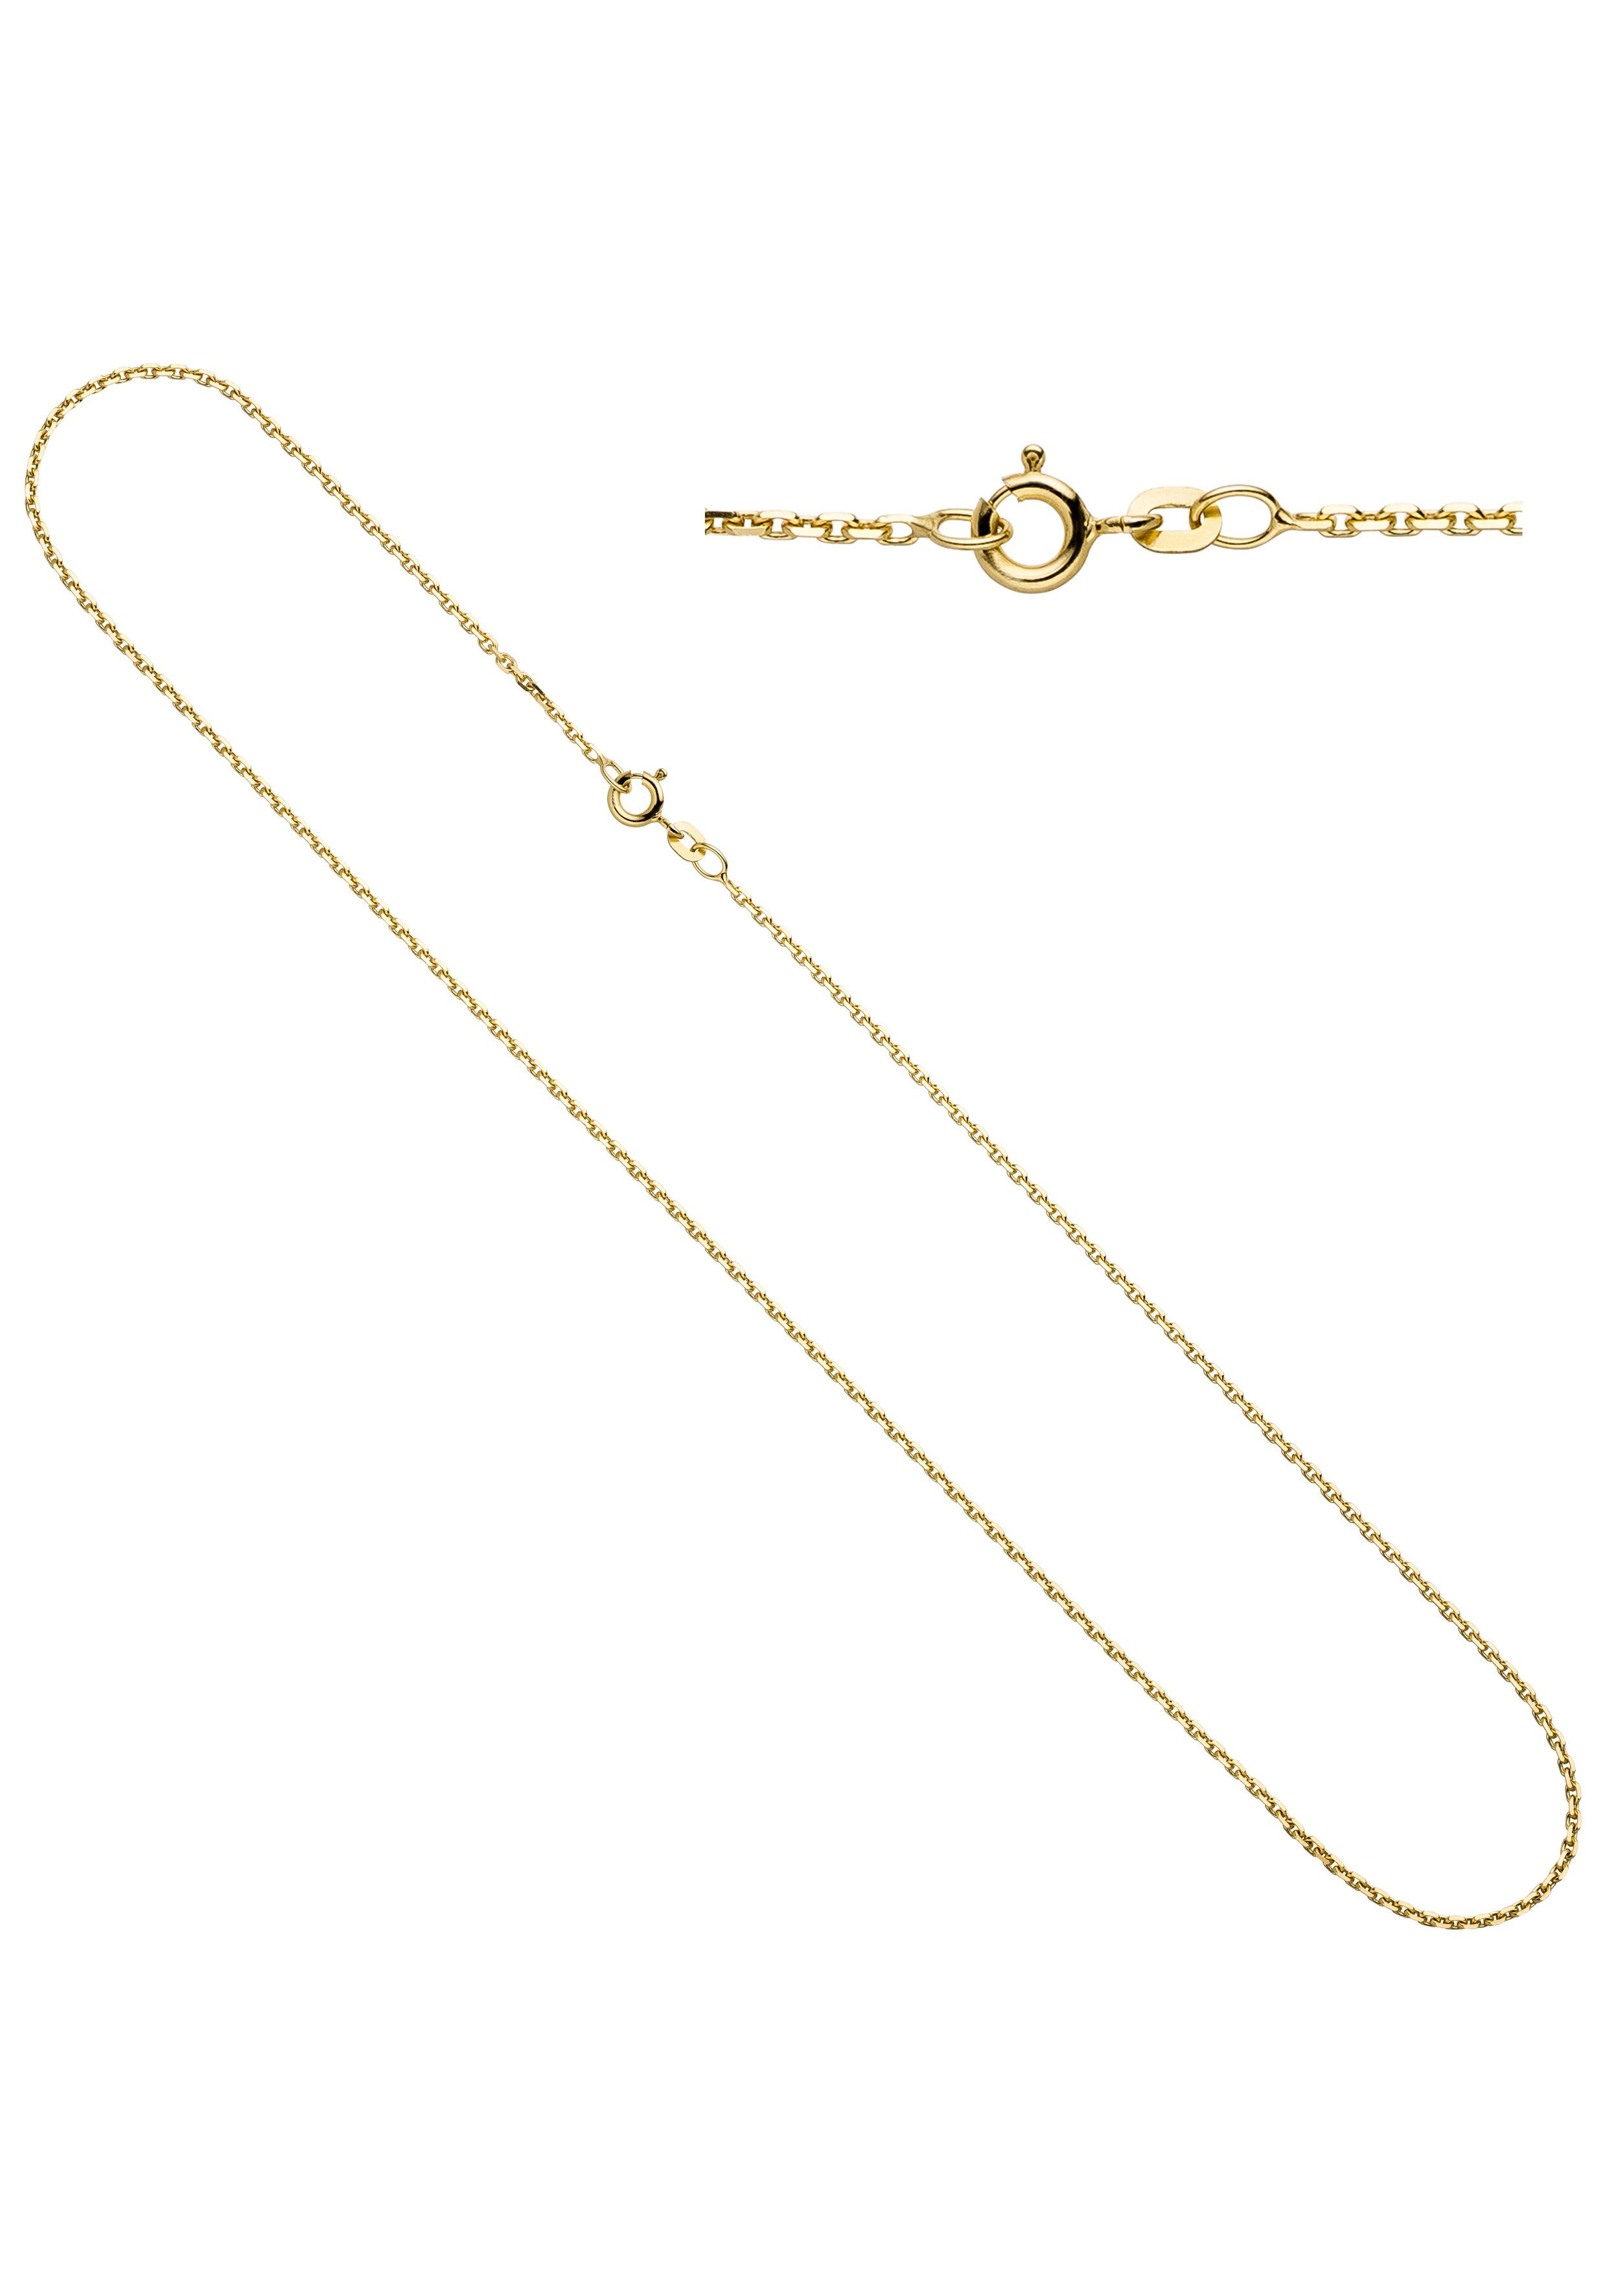 JOBO Goldkette Ankerkette 333 Gold 45 cm 1,2 mm